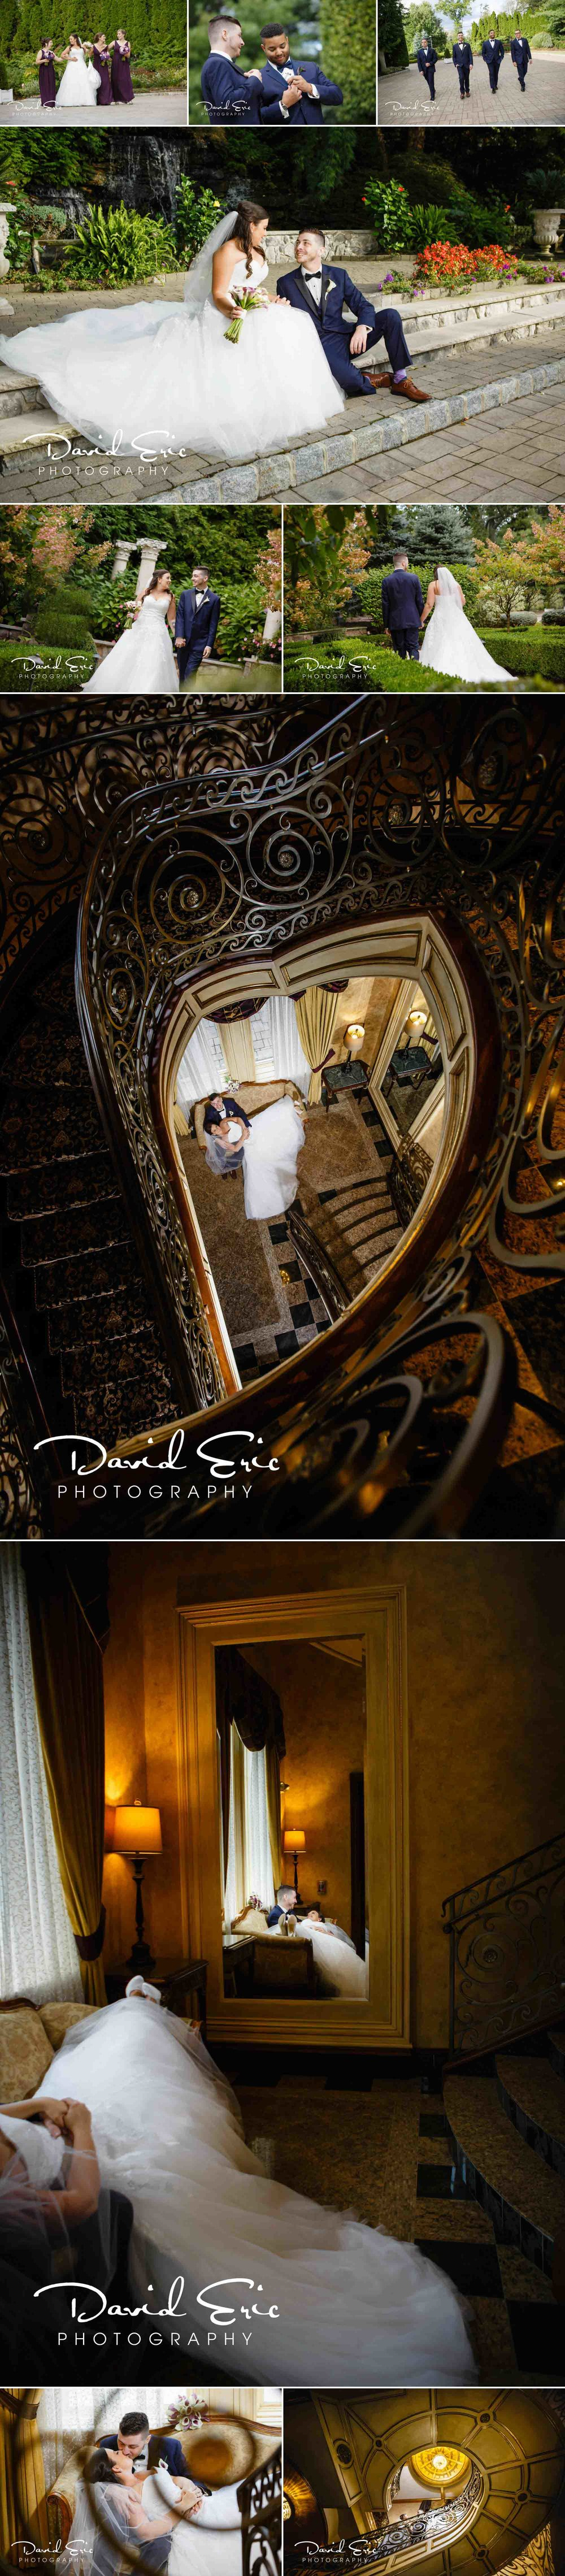 Wedding photos on the ground of Seasons Catering located at 644 Pascack Rd, Township of Washington, NJ 07676 showing off the staircase photos